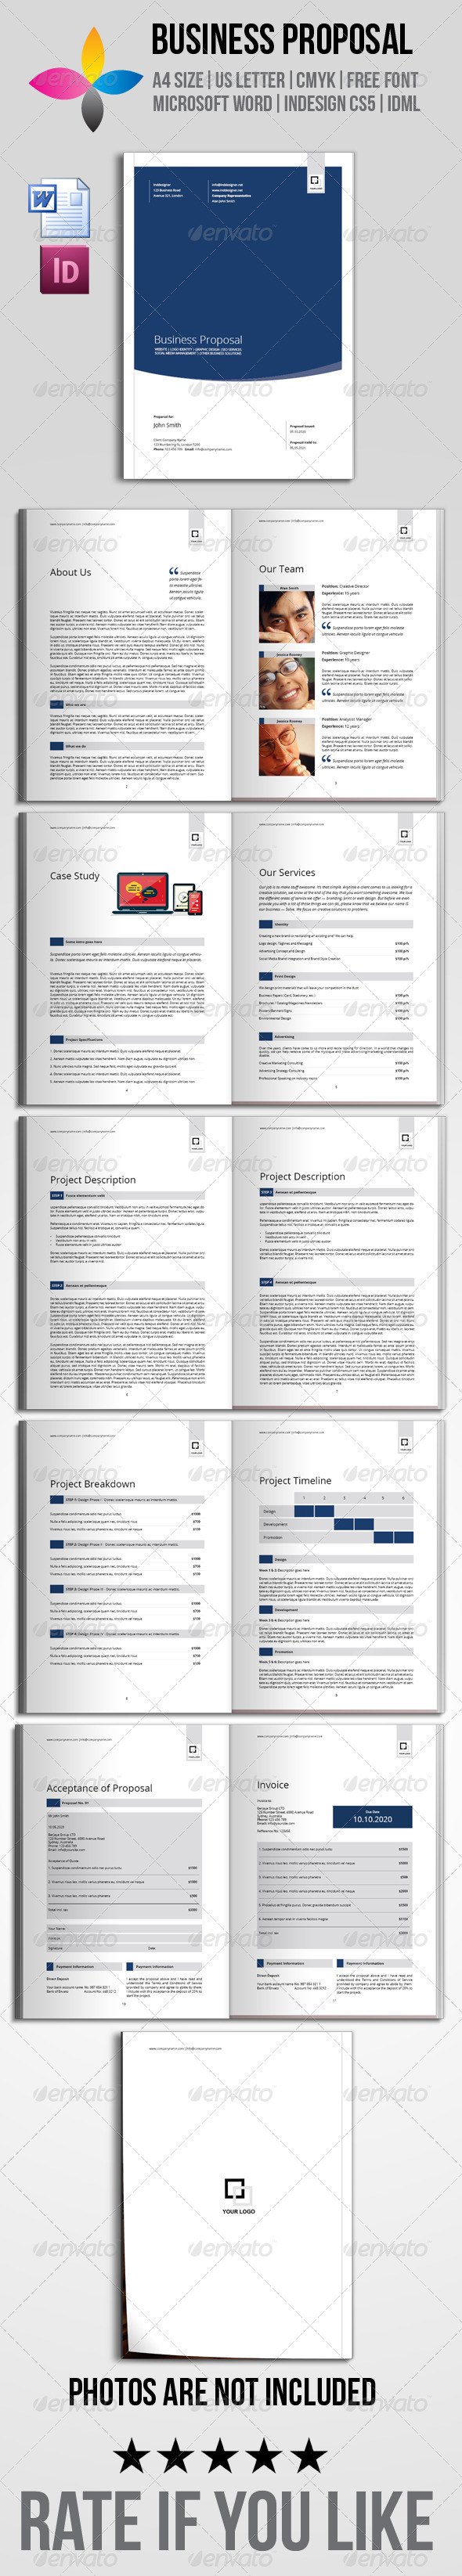 Business Proposal - Proposals & Invoices Stationery